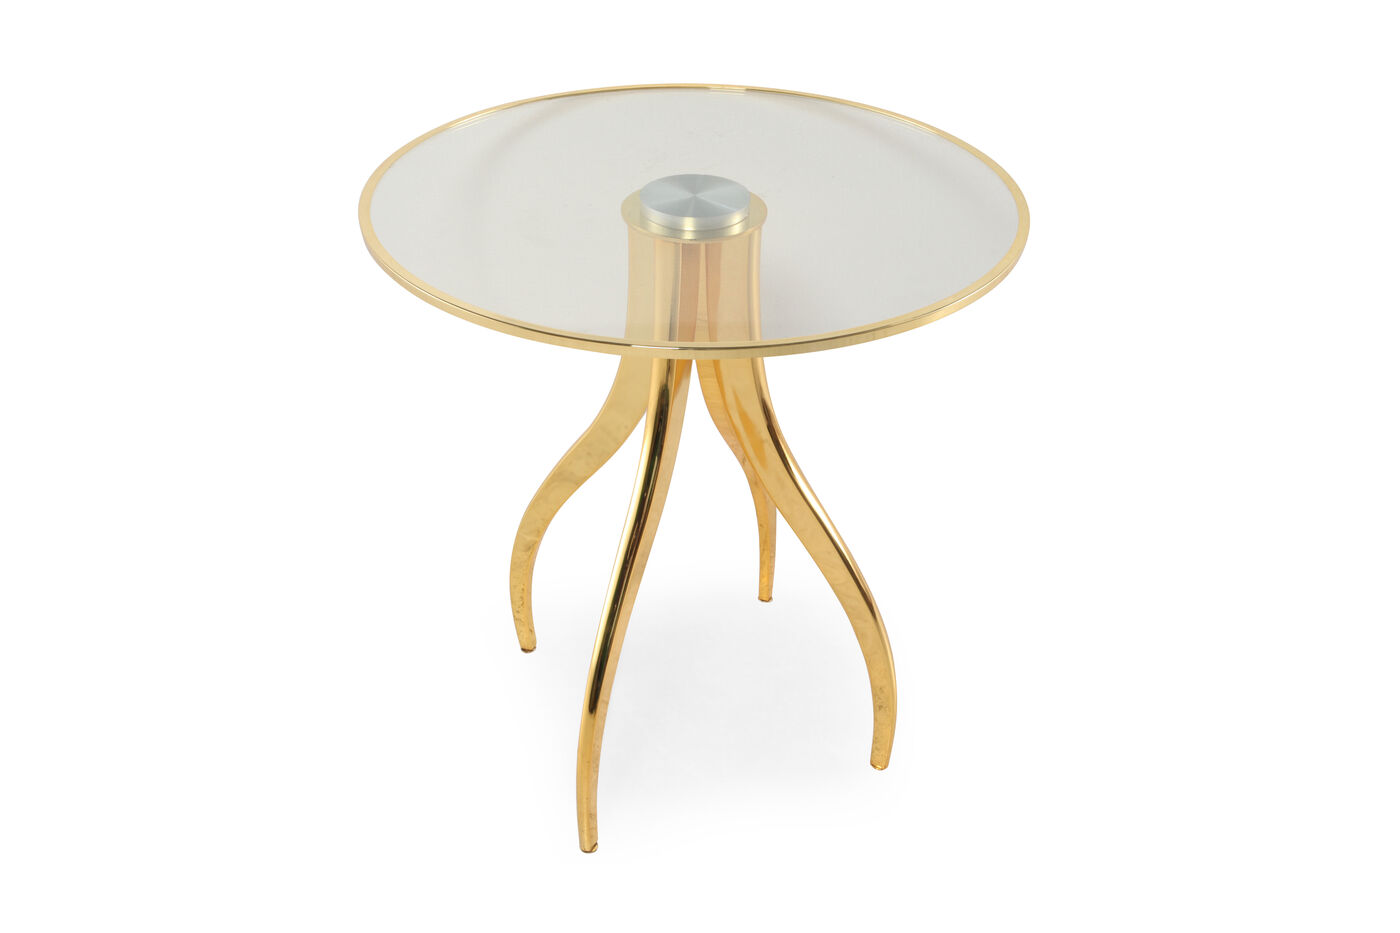 Round Chairside Table Bernhardt Interiors Cabrera Round Chairside Table Mathis